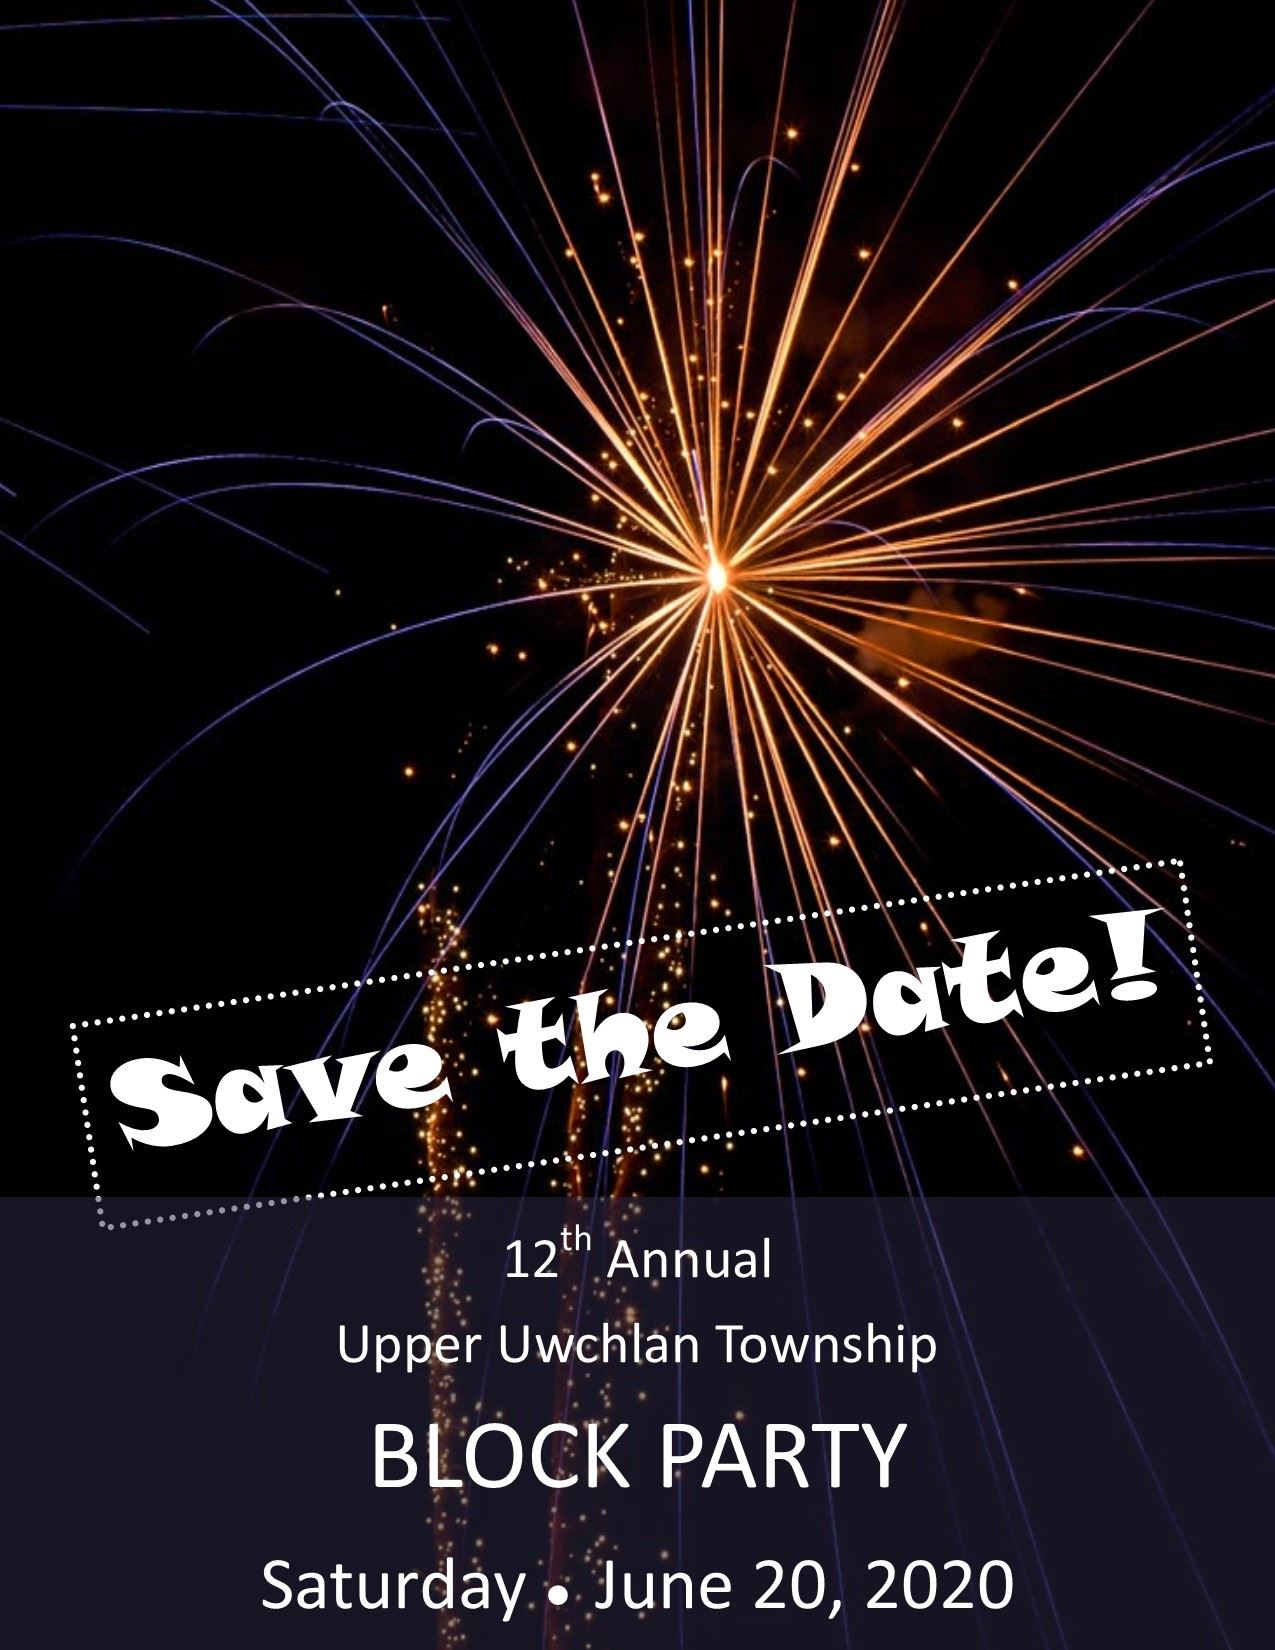 BlockParty2020SavetheDate